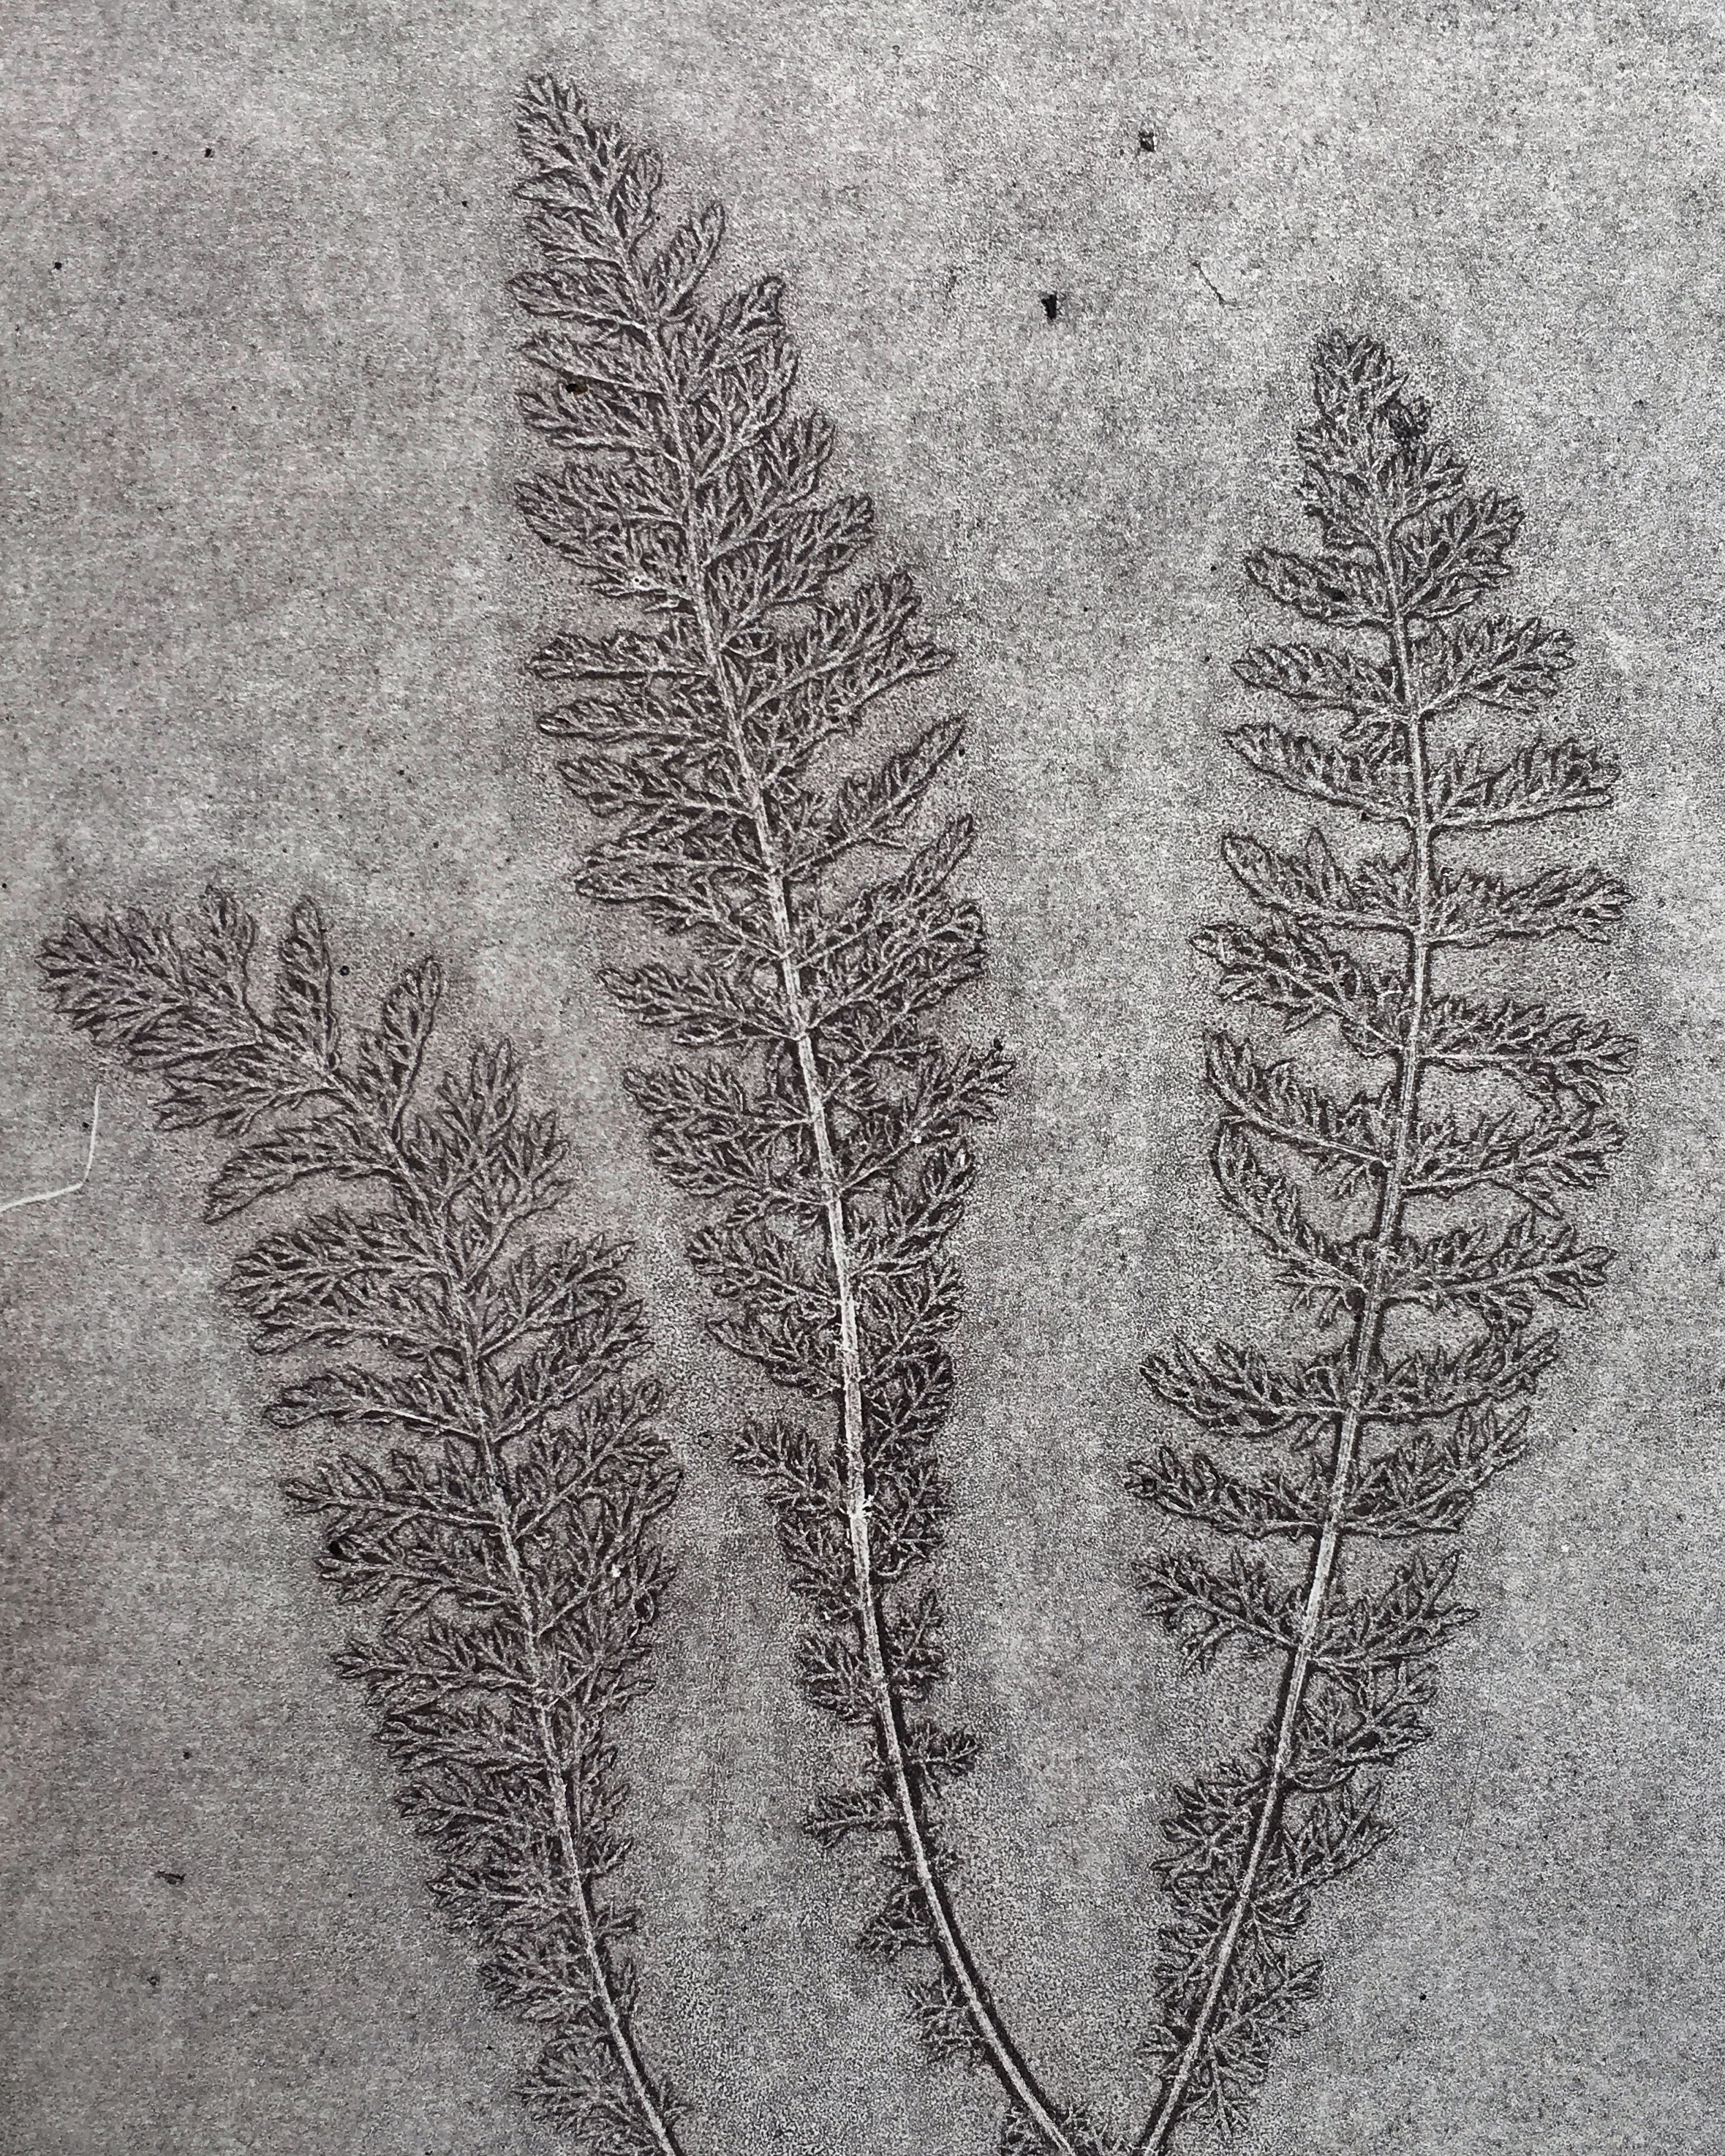 Silverweed Monoprint